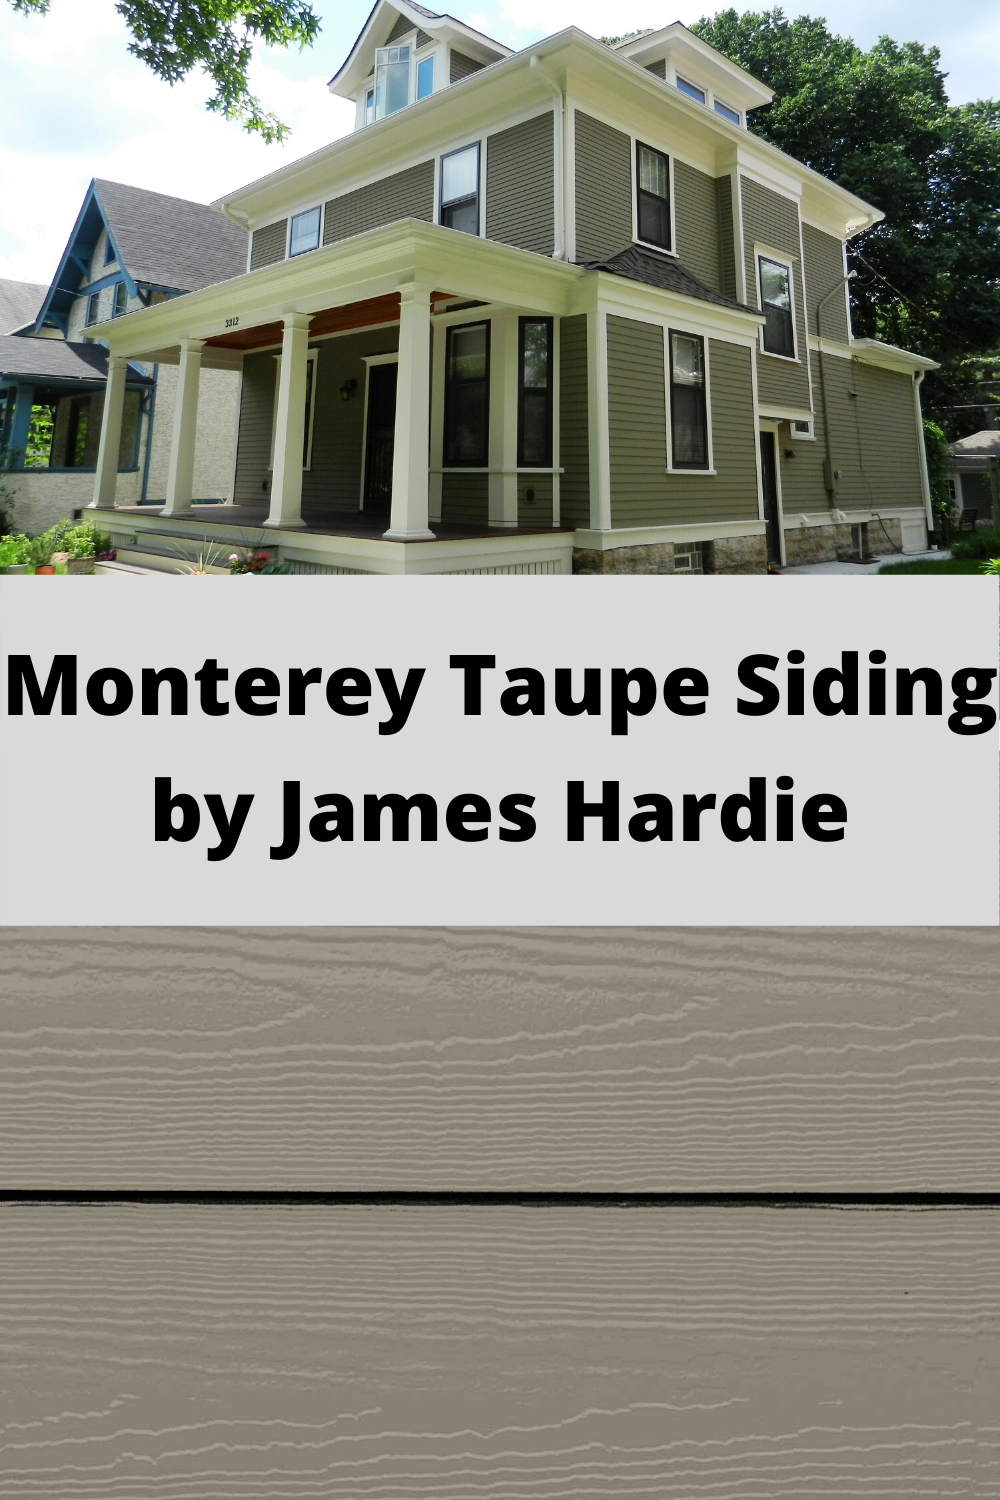 Monterey Taupe Siding By James Hardie In 2020 Siding Colors For Houses Siding Colors Taupe